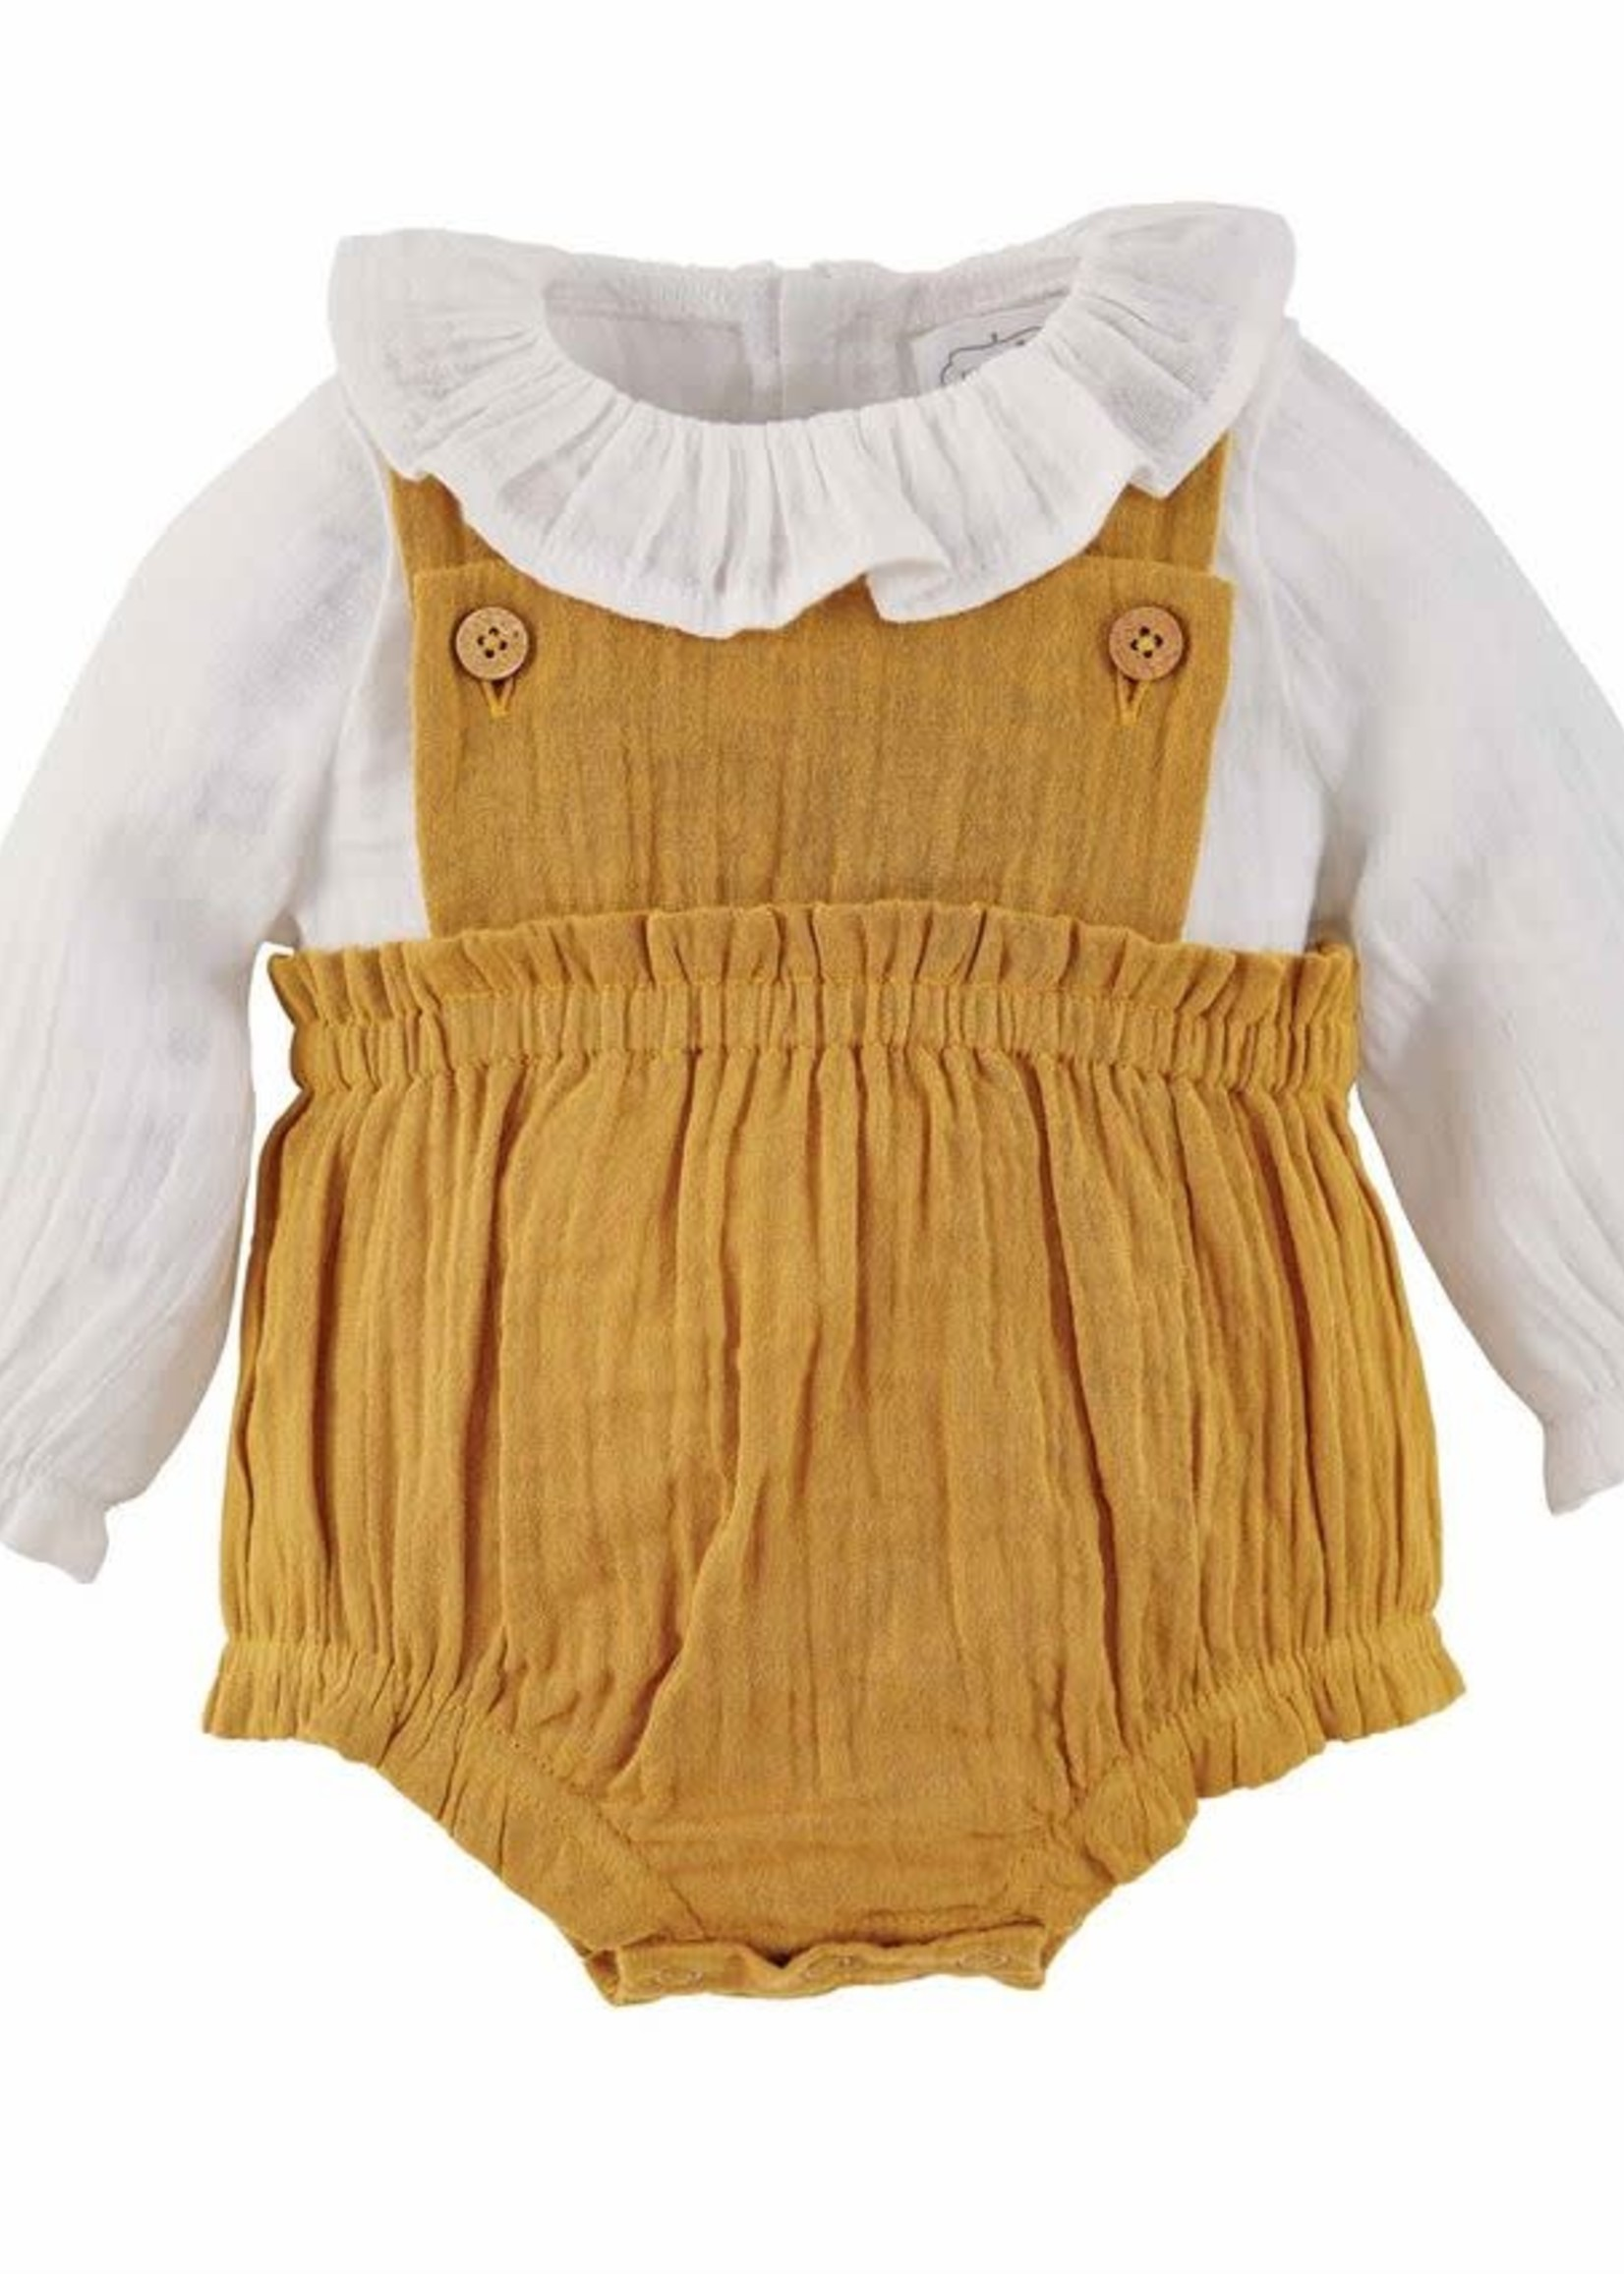 Mud Pie Fall Overhall Set 6-9 month